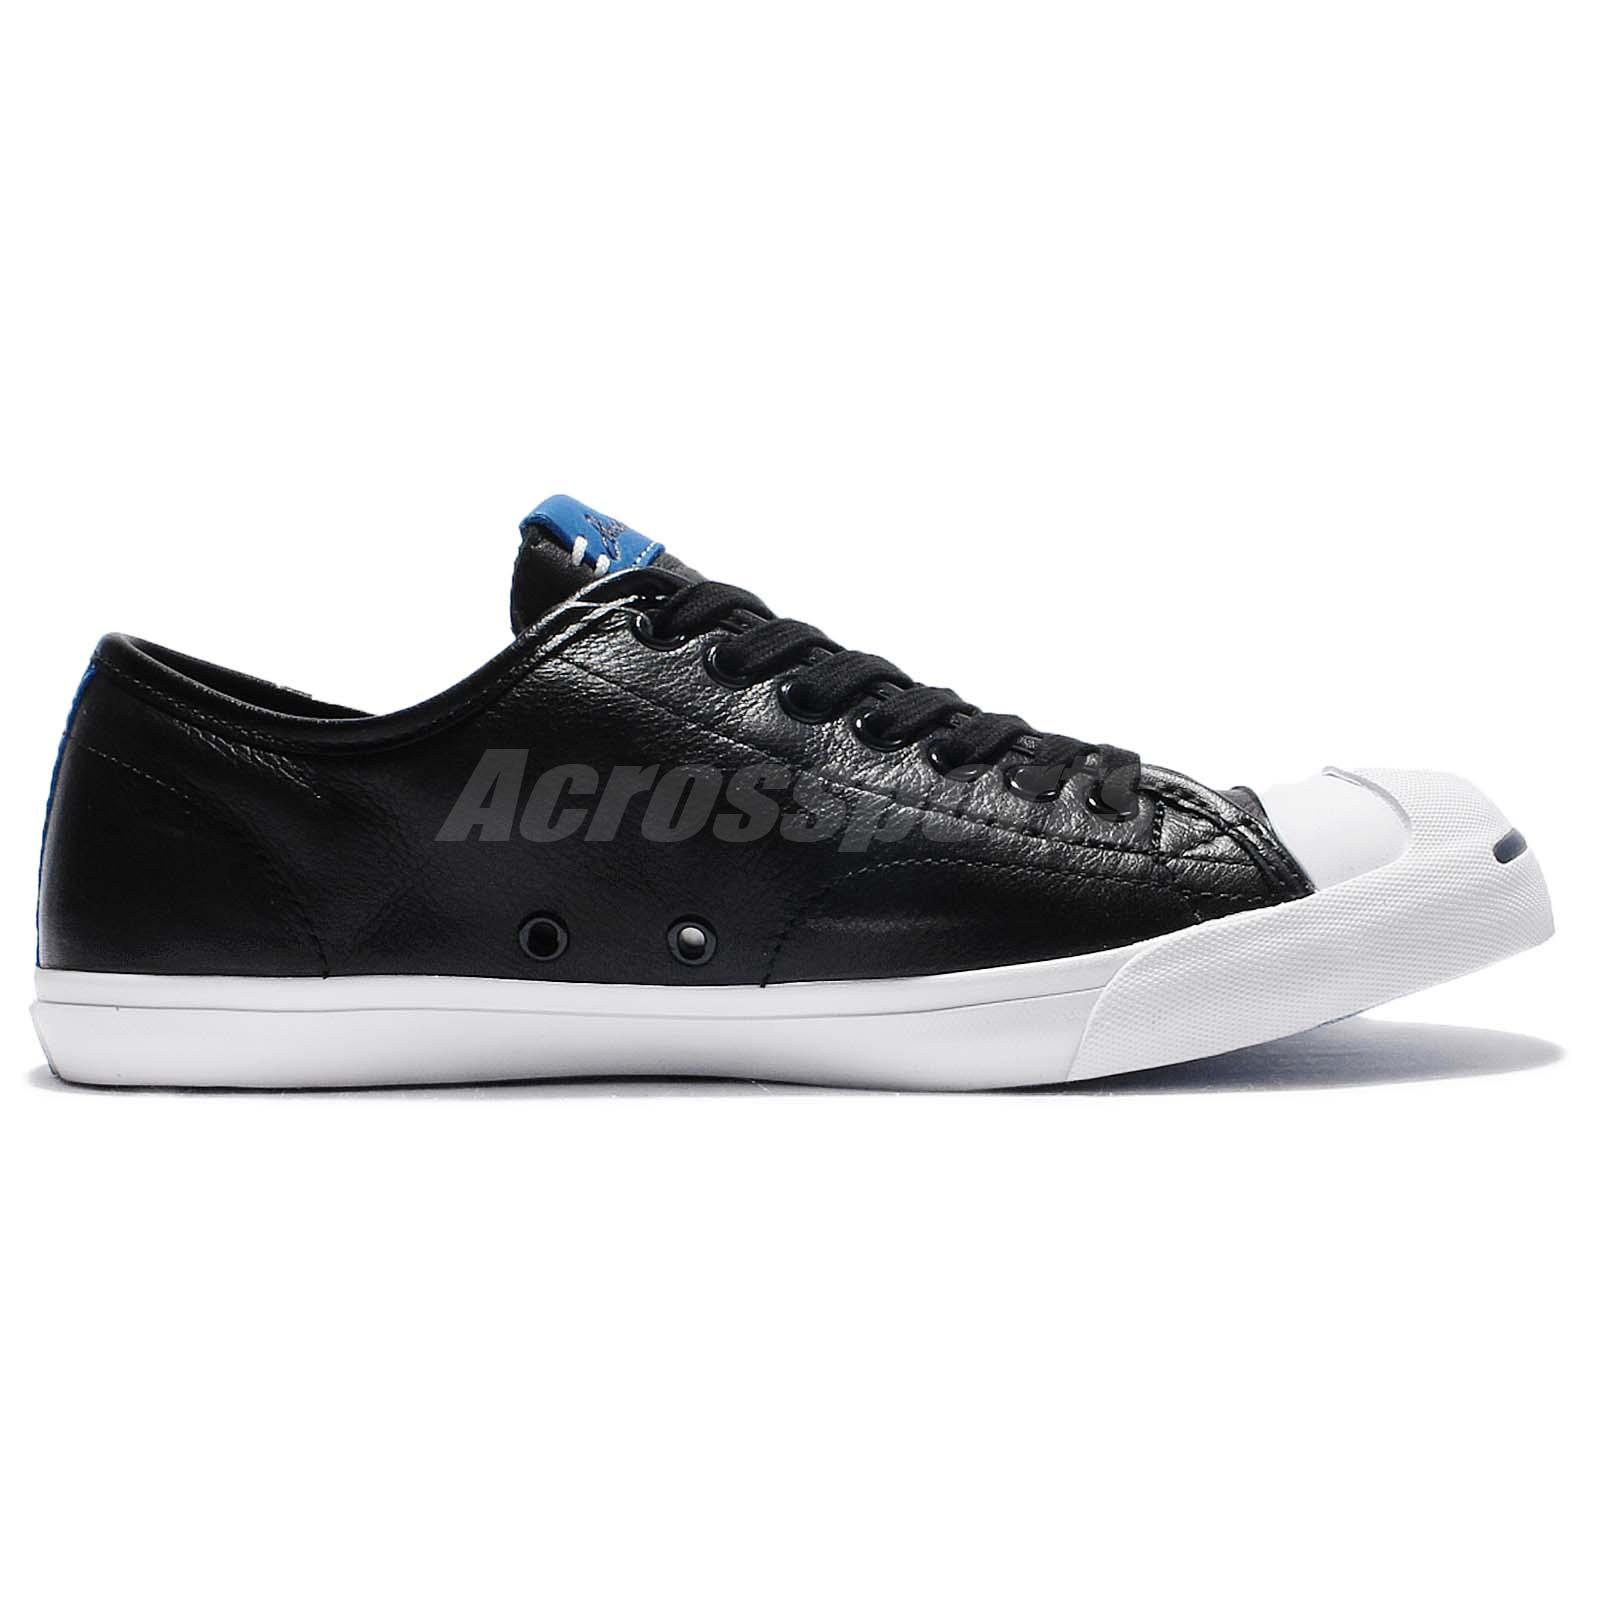 Converse Jack Purcell LP Leather Black White Casual Shoes Sneakers 156377C T8sWBcrr